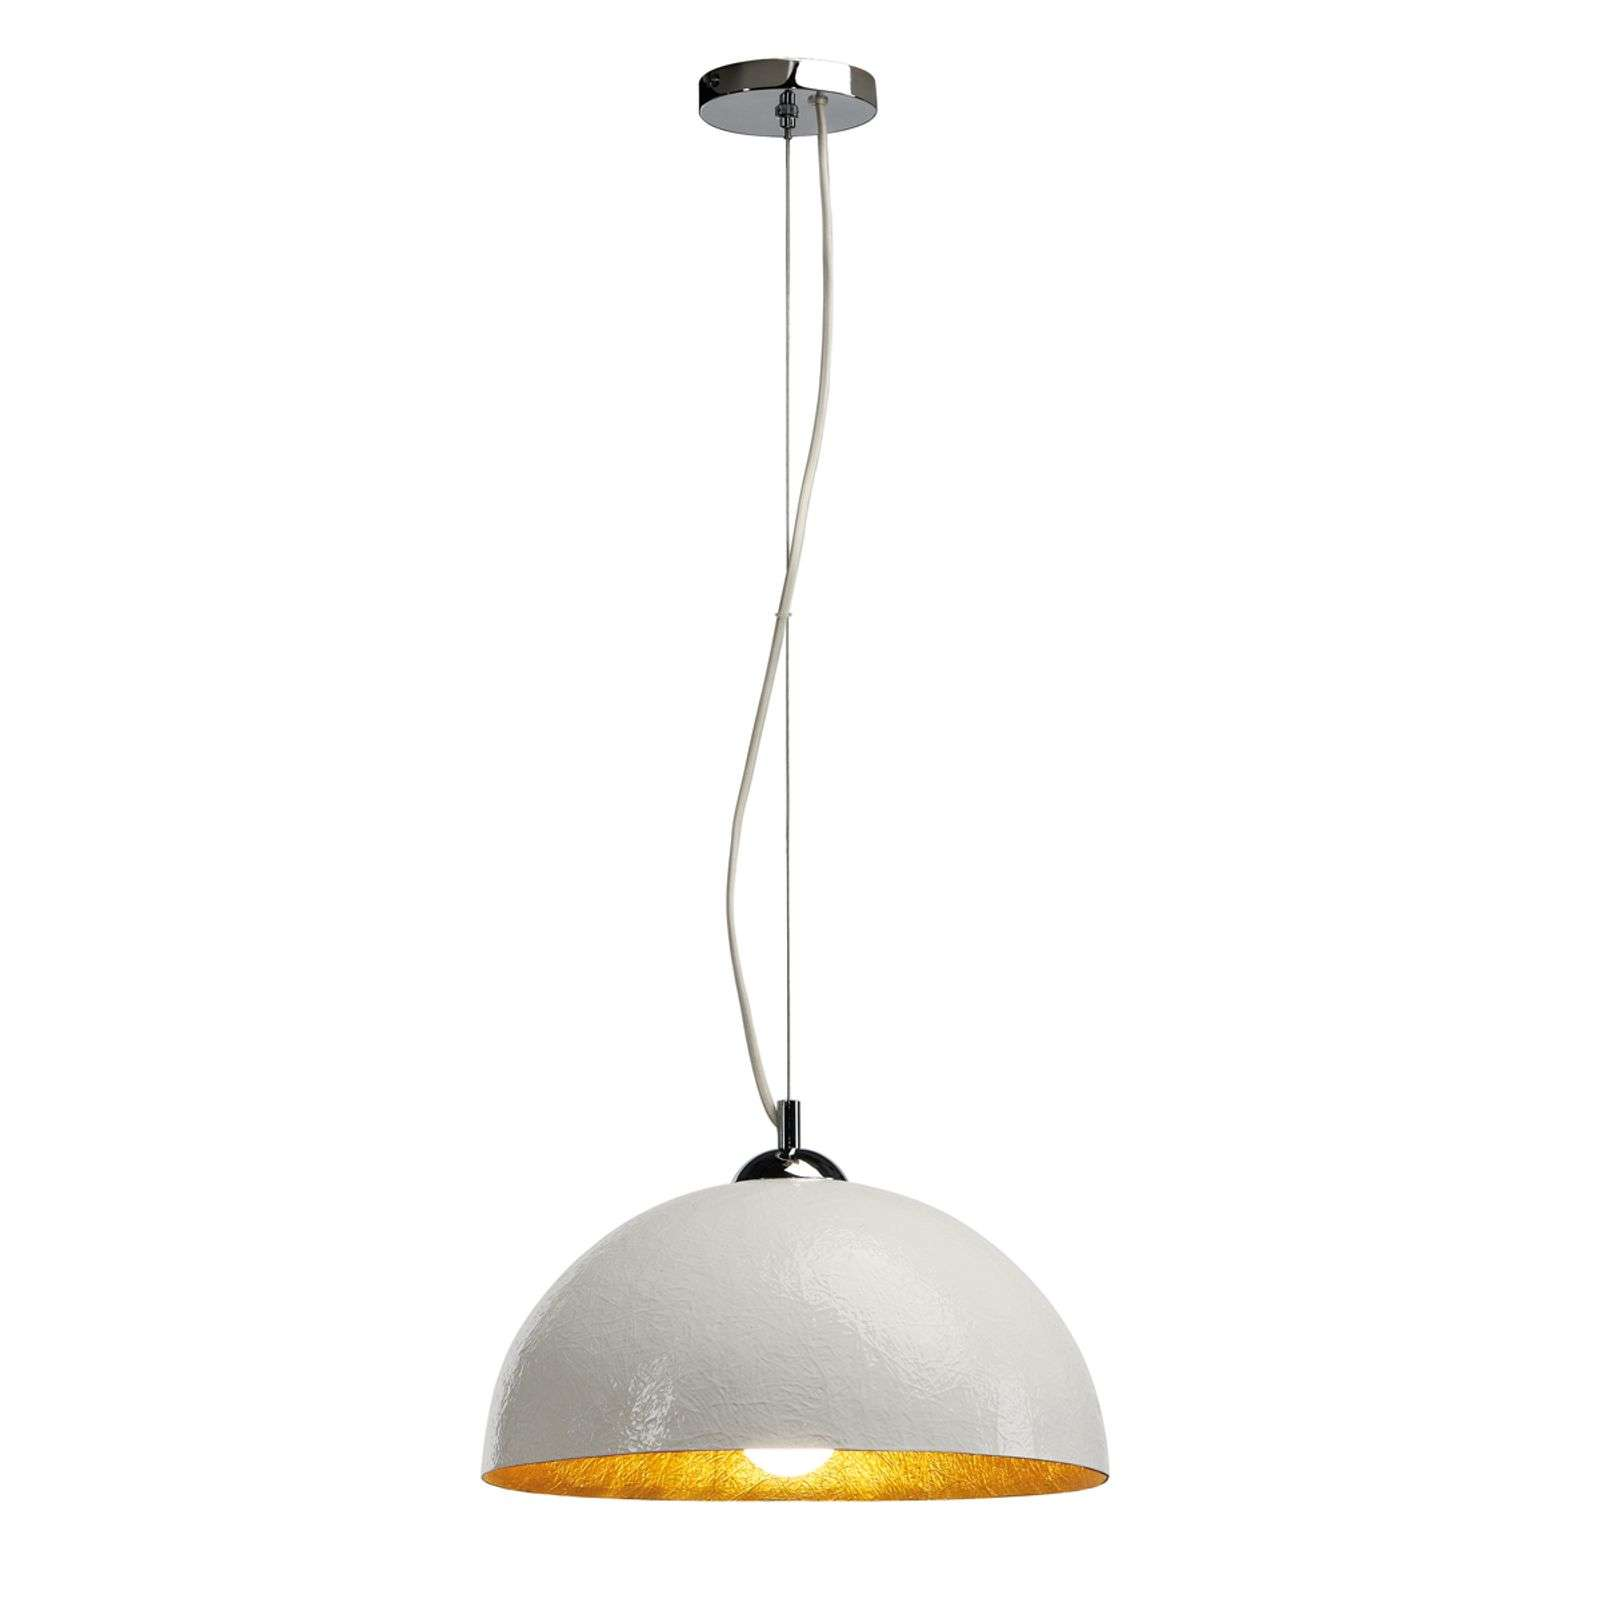 FORCHINI hanglamp klein, wit, goud